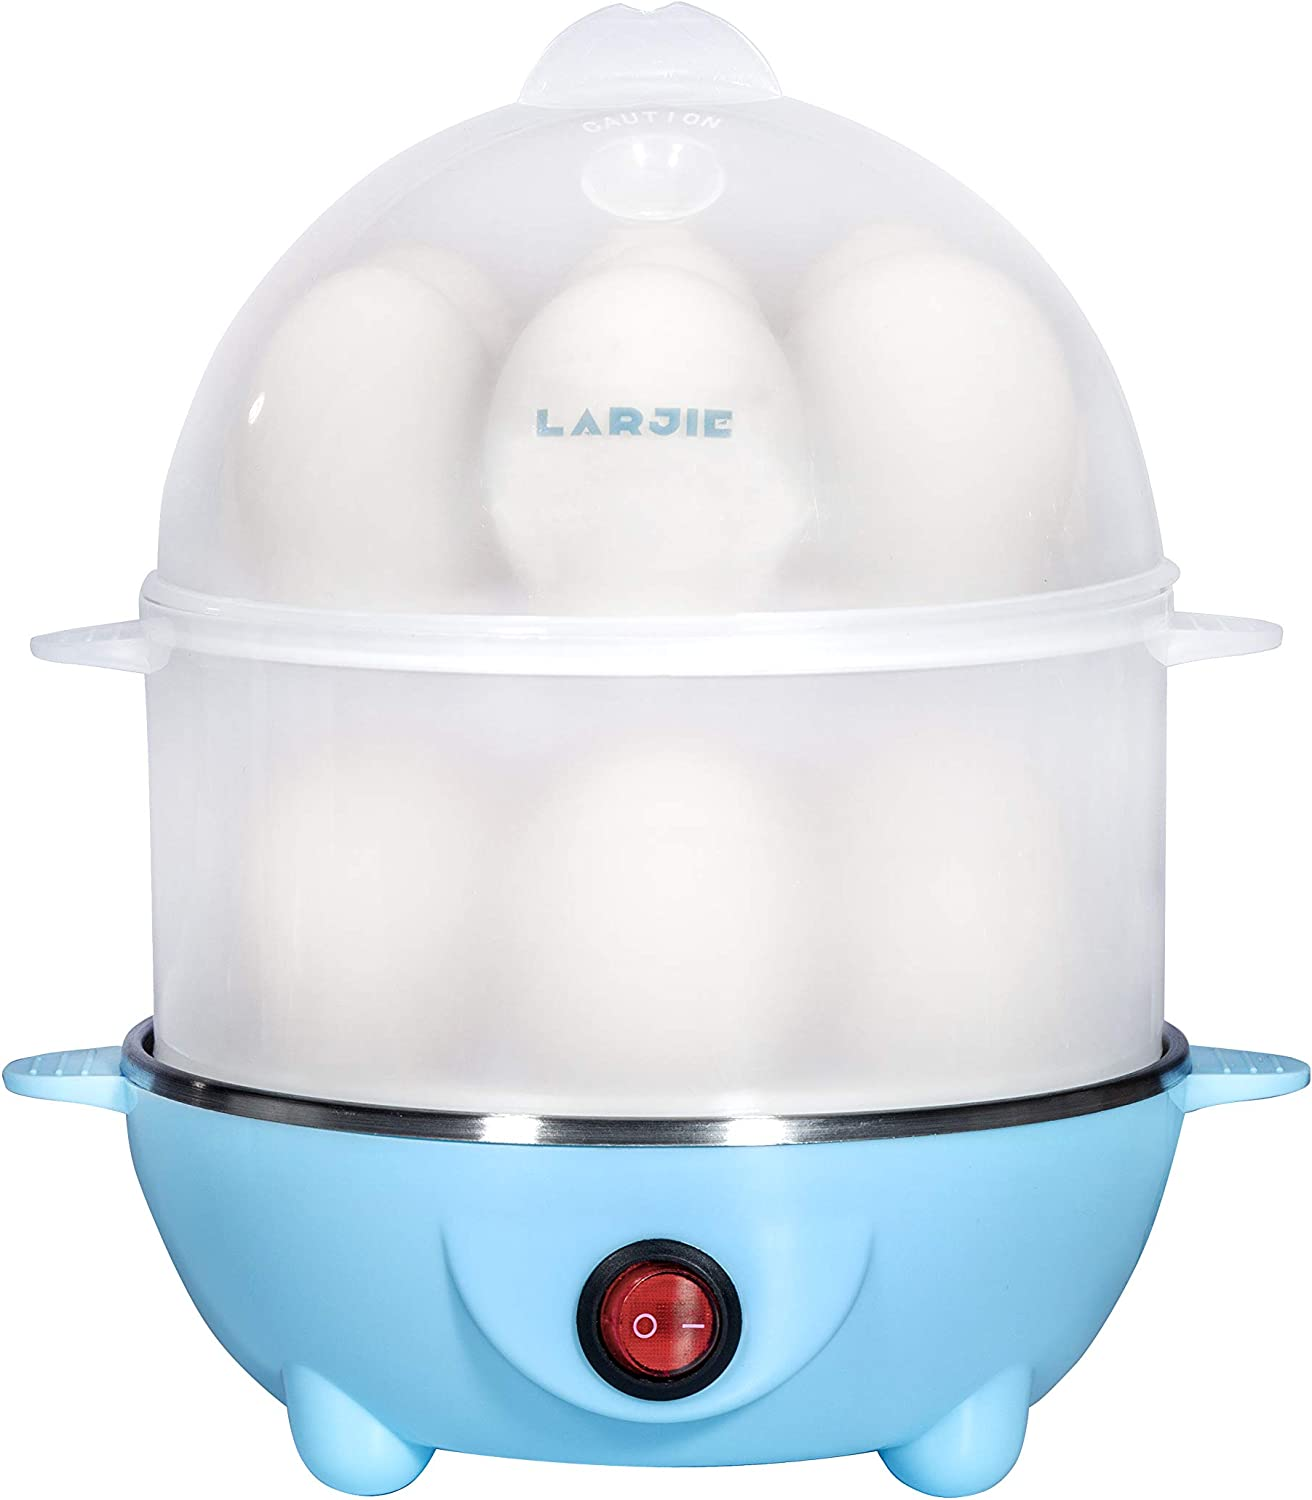 Electric Egg Boiler Cooker Rapid Poacher 7 or 14 Capacity Soft Medium Hard Boiled or Poached for Hard Boiled Scrambled Eggs or Omelets Steamed Vegetables Seafood w/Auto Shut Off Feature